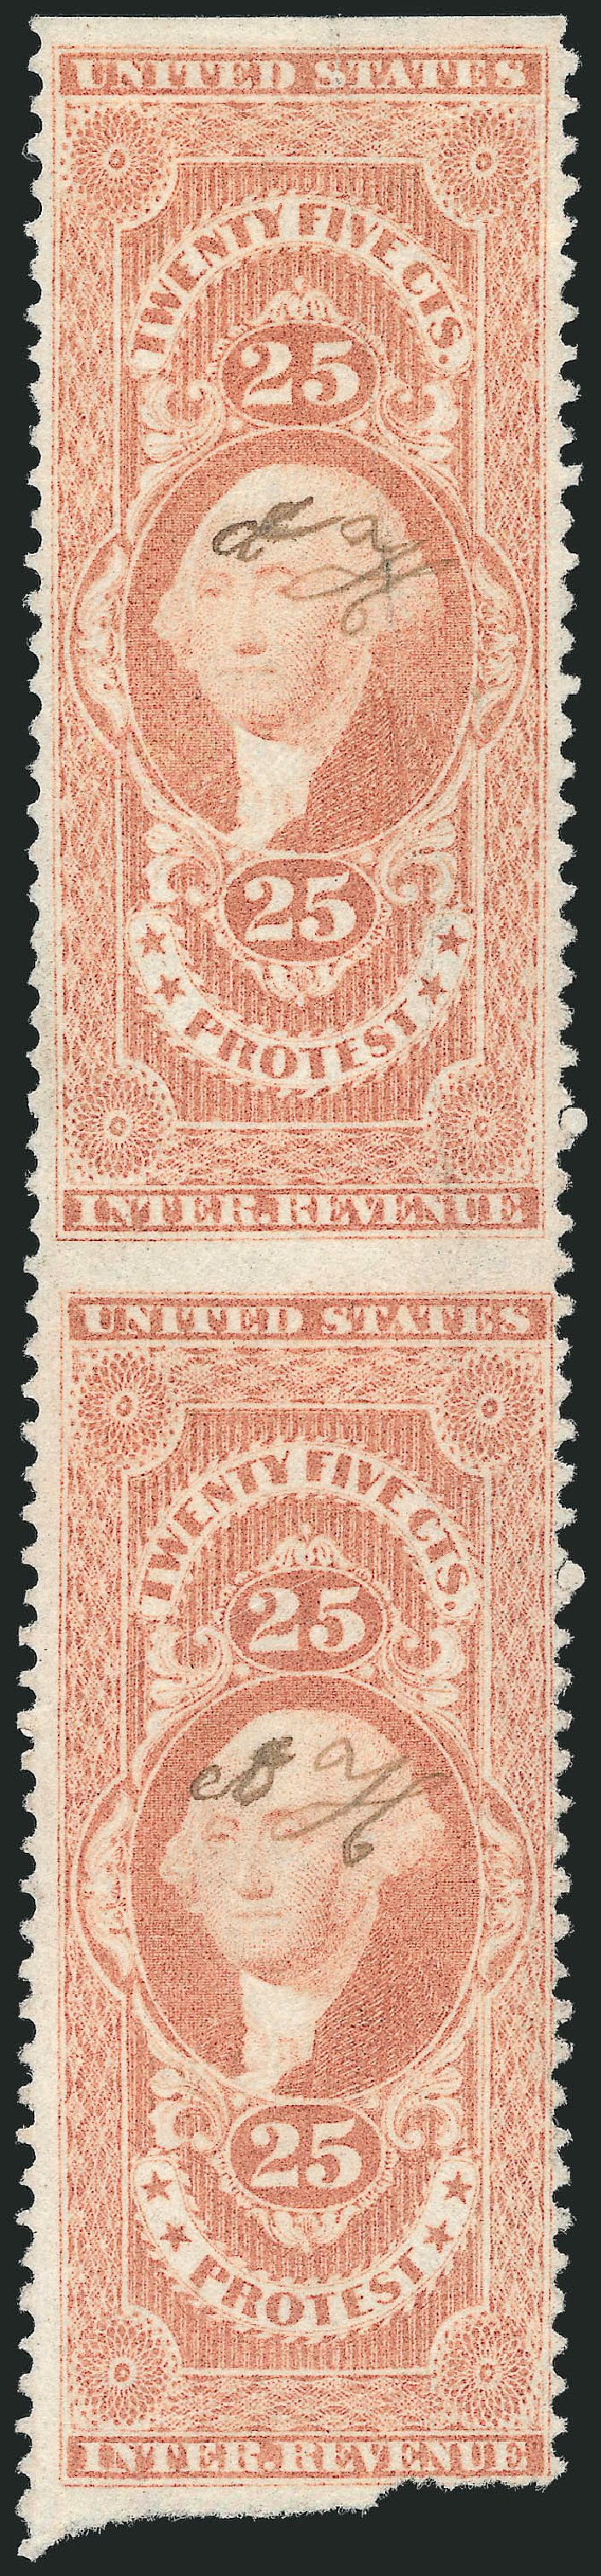 Price of US Stamps Scott # R49 - 25c 1862 Revenue Protest. Robert Siegel Auction Galleries, Dec 2014, Sale 1089, Lot 405